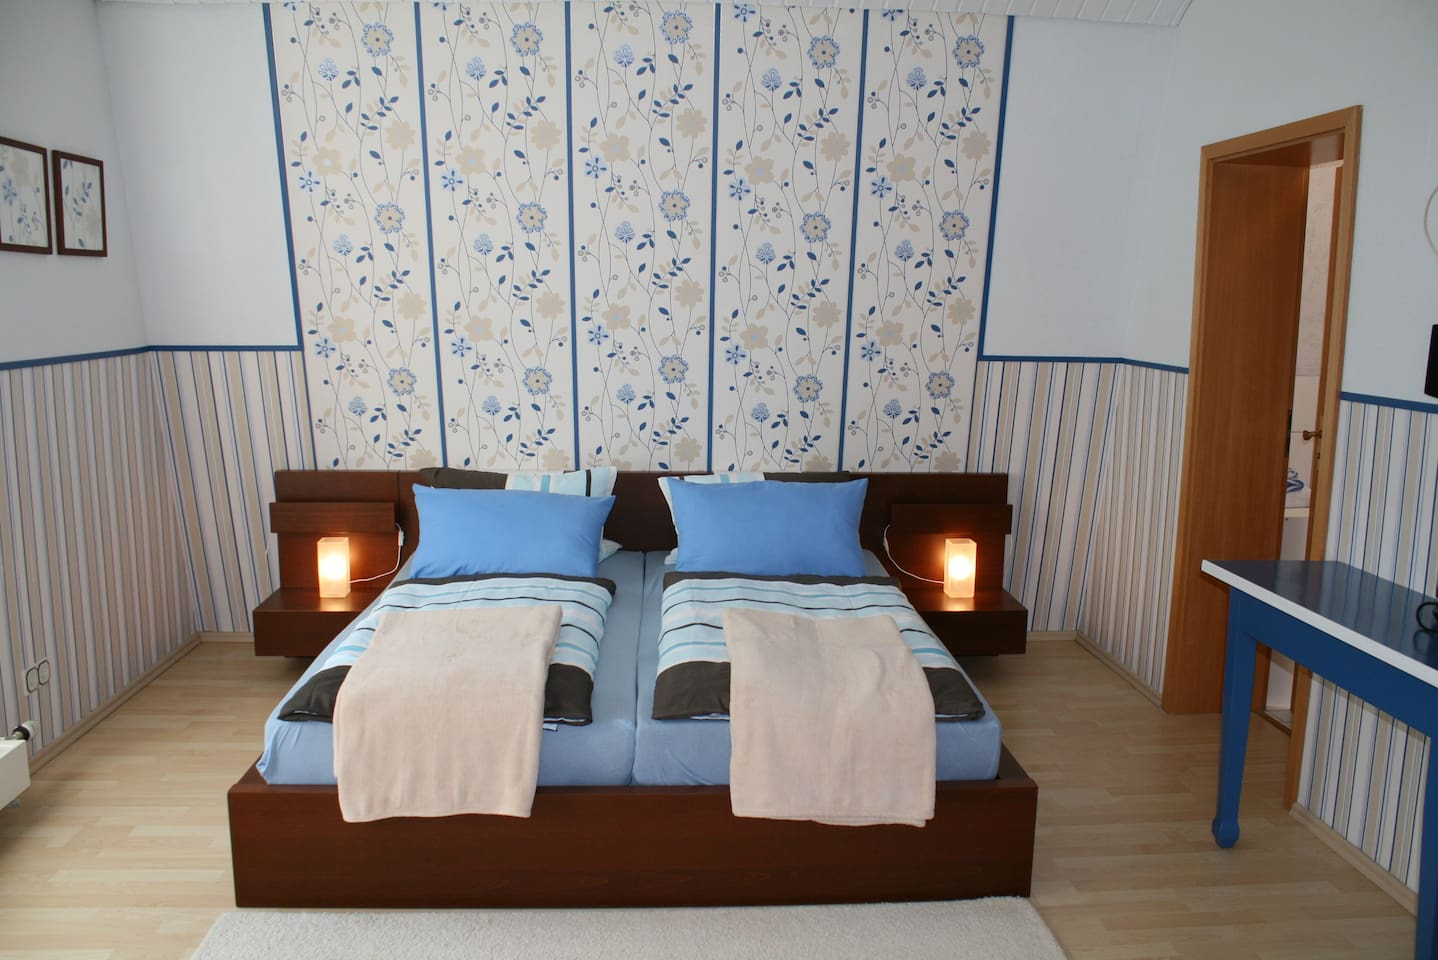 double room No. 2 / bed size 180x200 cm